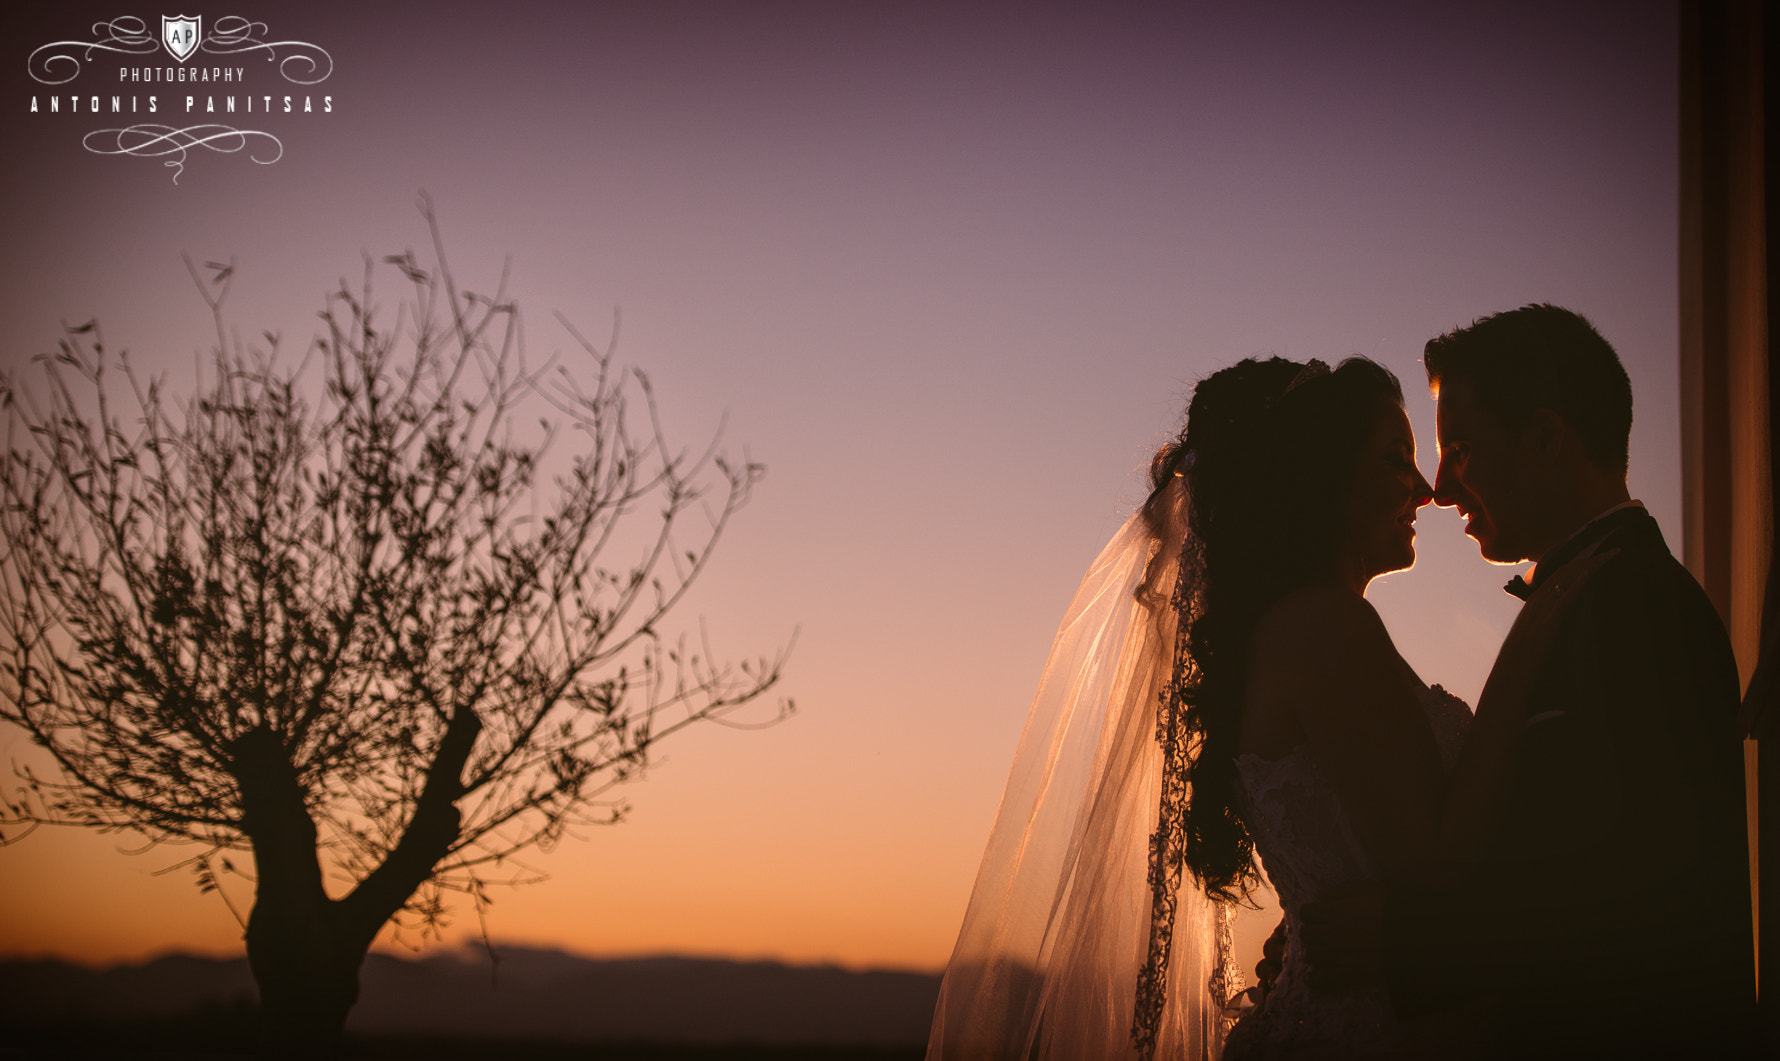 Photograph Wedding Day by Antonis Panitsas on 500px